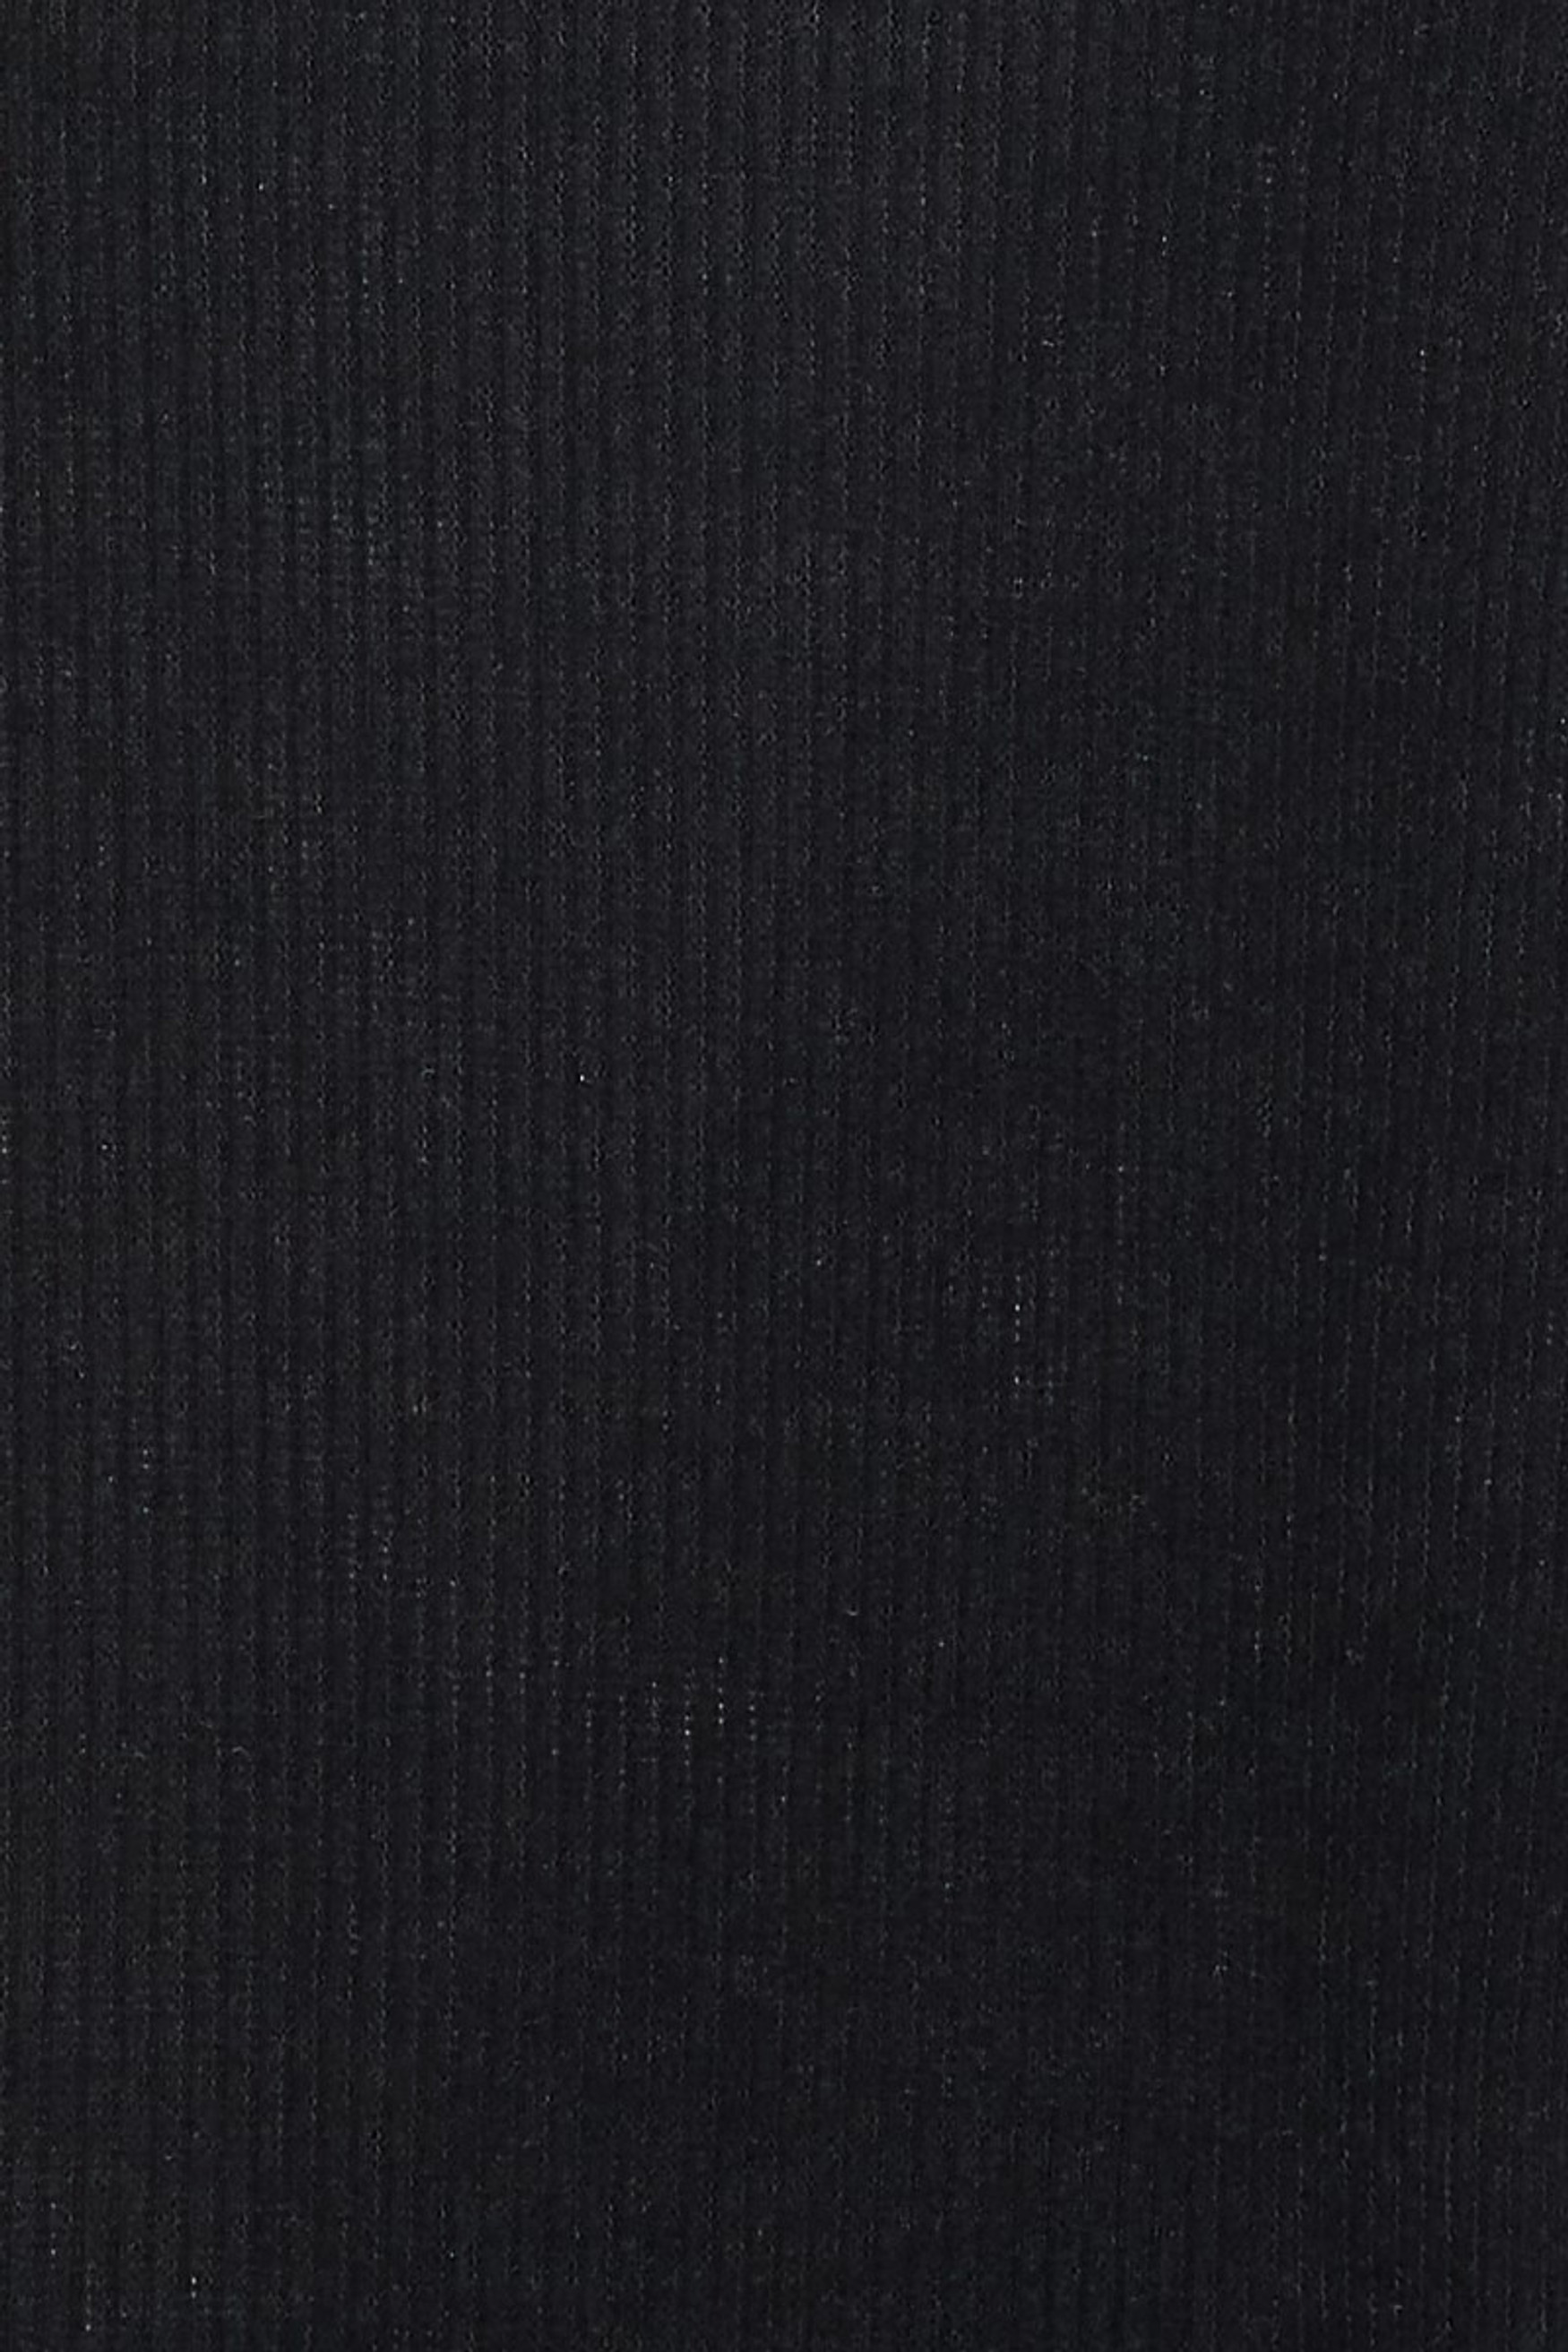 Close-up fabric swatch image of Black  Solid Fitted Rayon Mock Neck Long Sleeve Side Slit Midi Dress